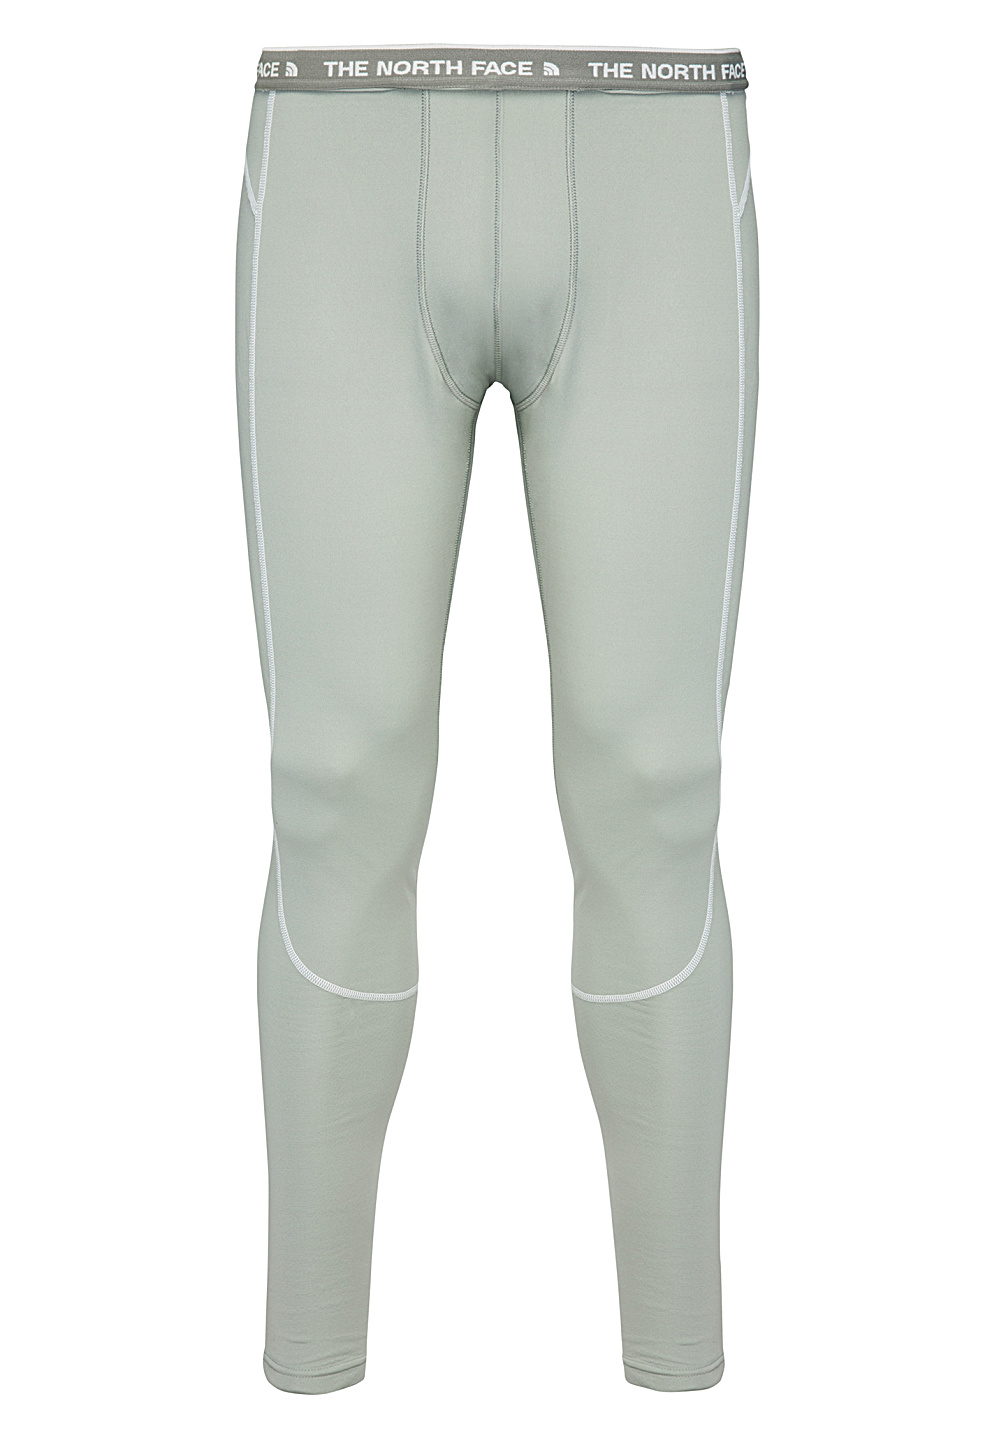 f87818201 THE NORTH FACE WarTights - Thermal Underwear for Men - Grey